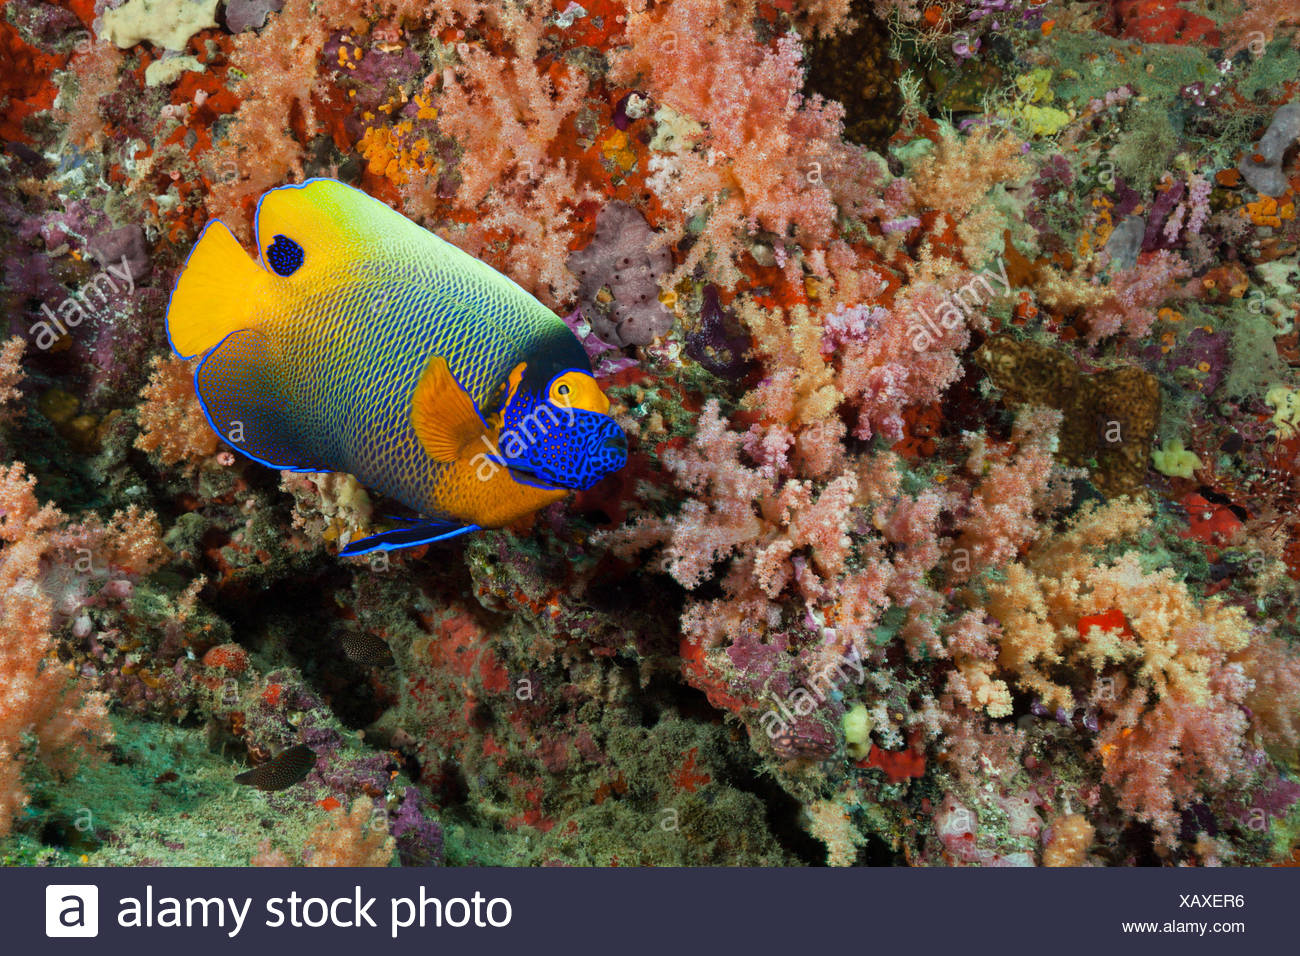 Yellowmask Angelfish, Pomacanthus xanthometopon, North Male Atoll, Maldives - Stock Image